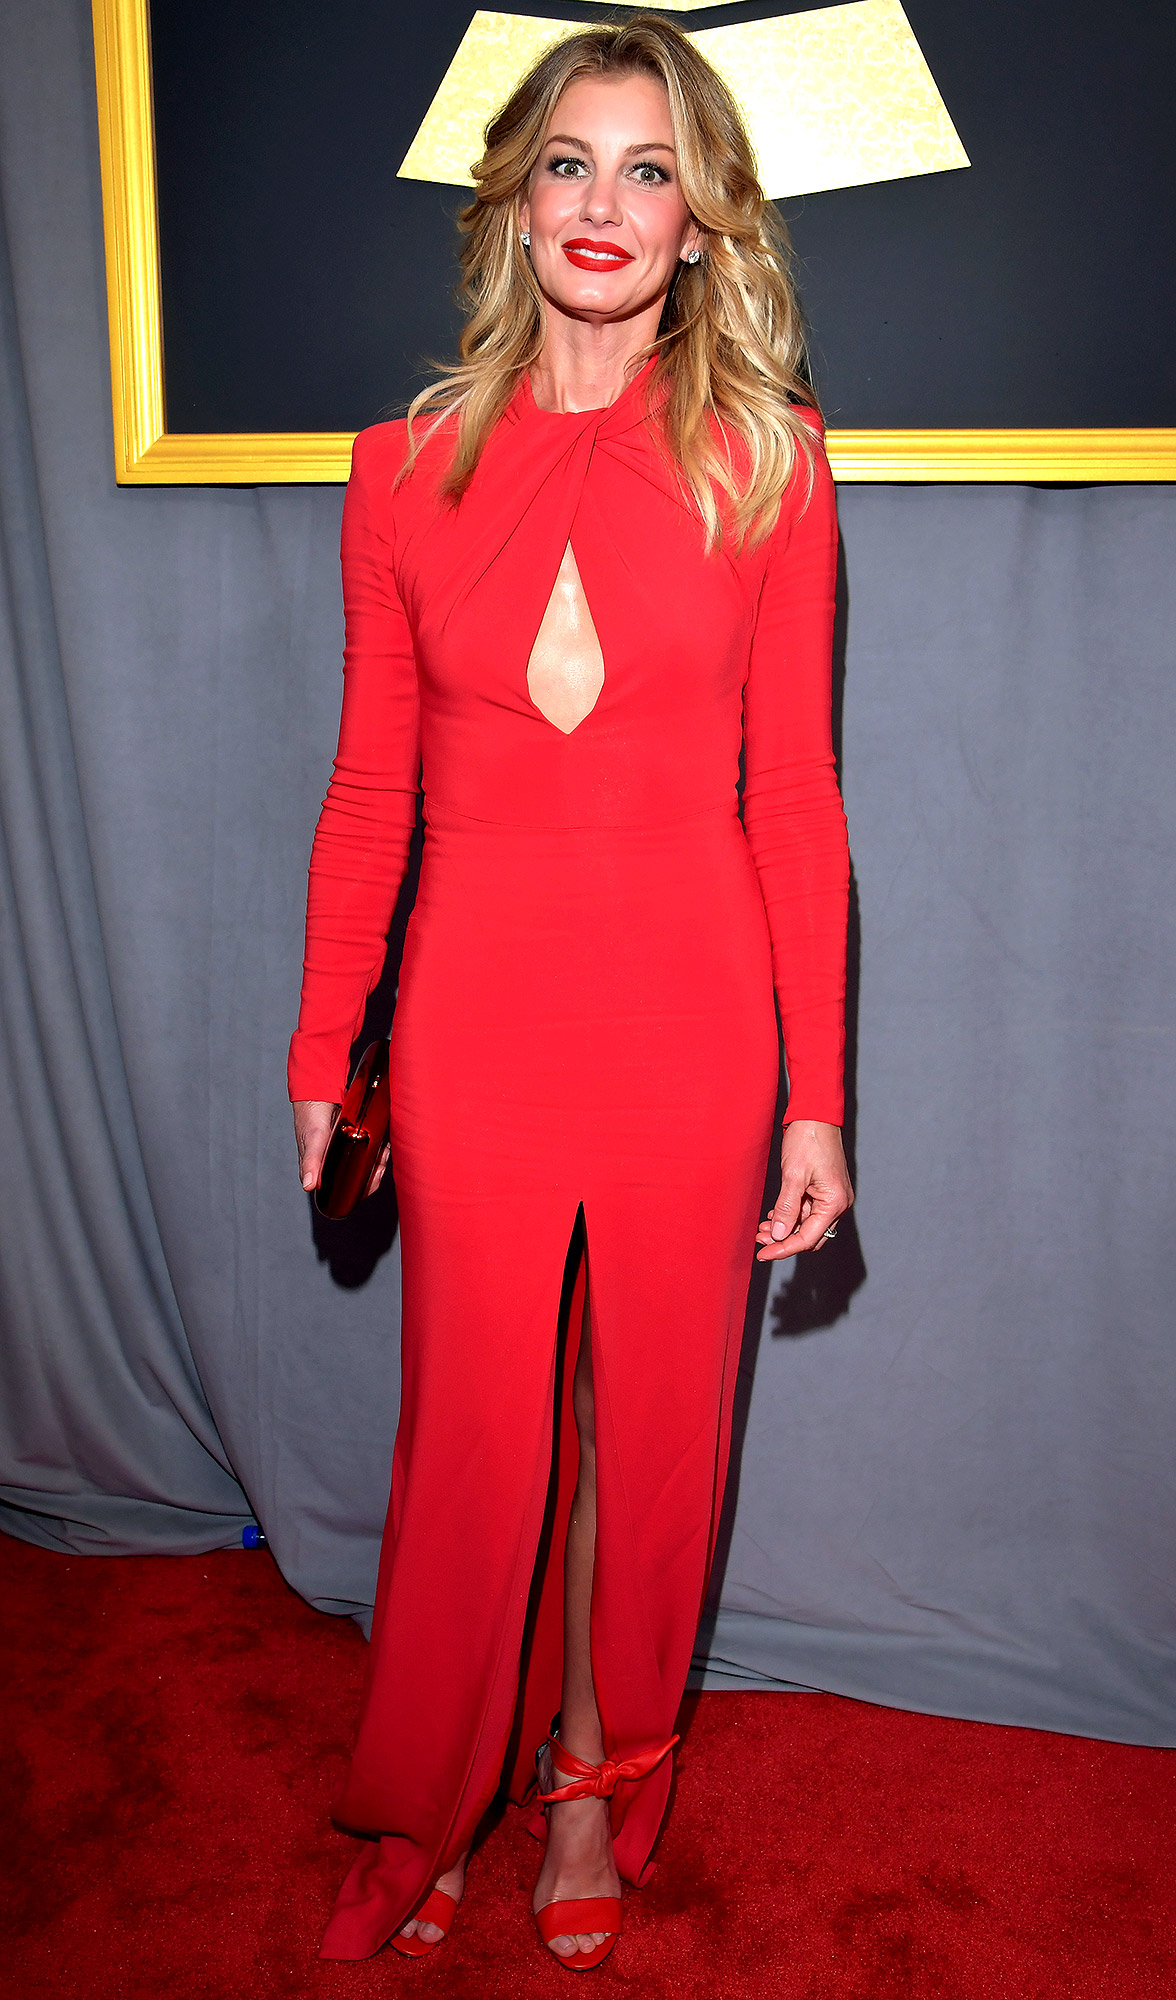 LOS ANGELES, CA - FEBRUARY 12: Recording artist Faith Hill attends The 59th GRAMMY Awards at STAPLES Center on February 12, 2017 in Los Angeles, California. (Photo by Lester Cohen/WireImage)